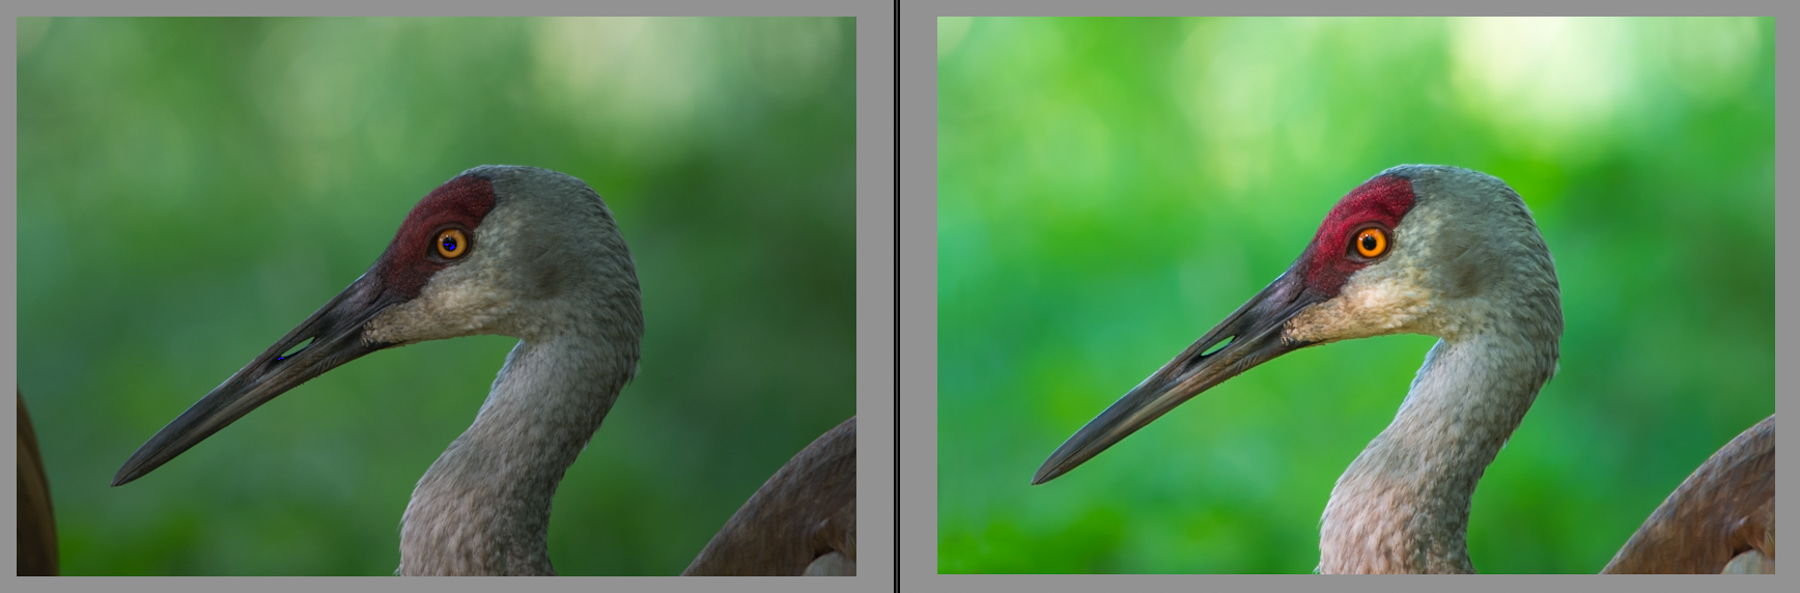 20150802-7100swnaturephotoaug1-before and after